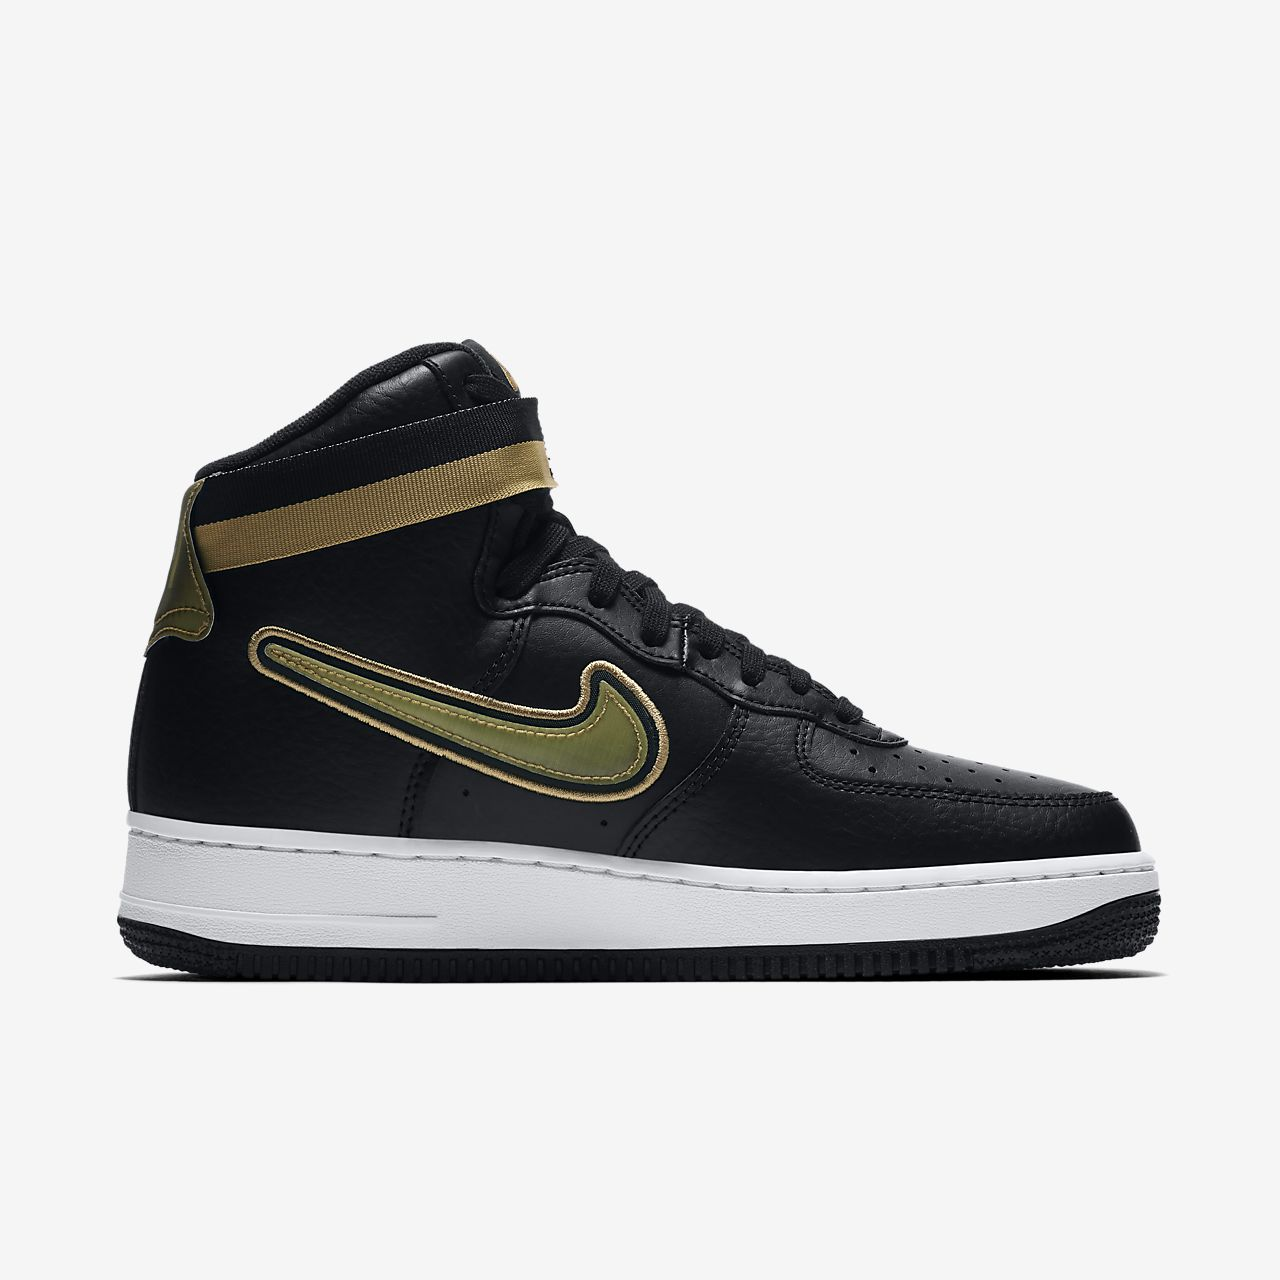 Nike Air Force 1 High '07 LV8 Sport NBA Men's Shoe